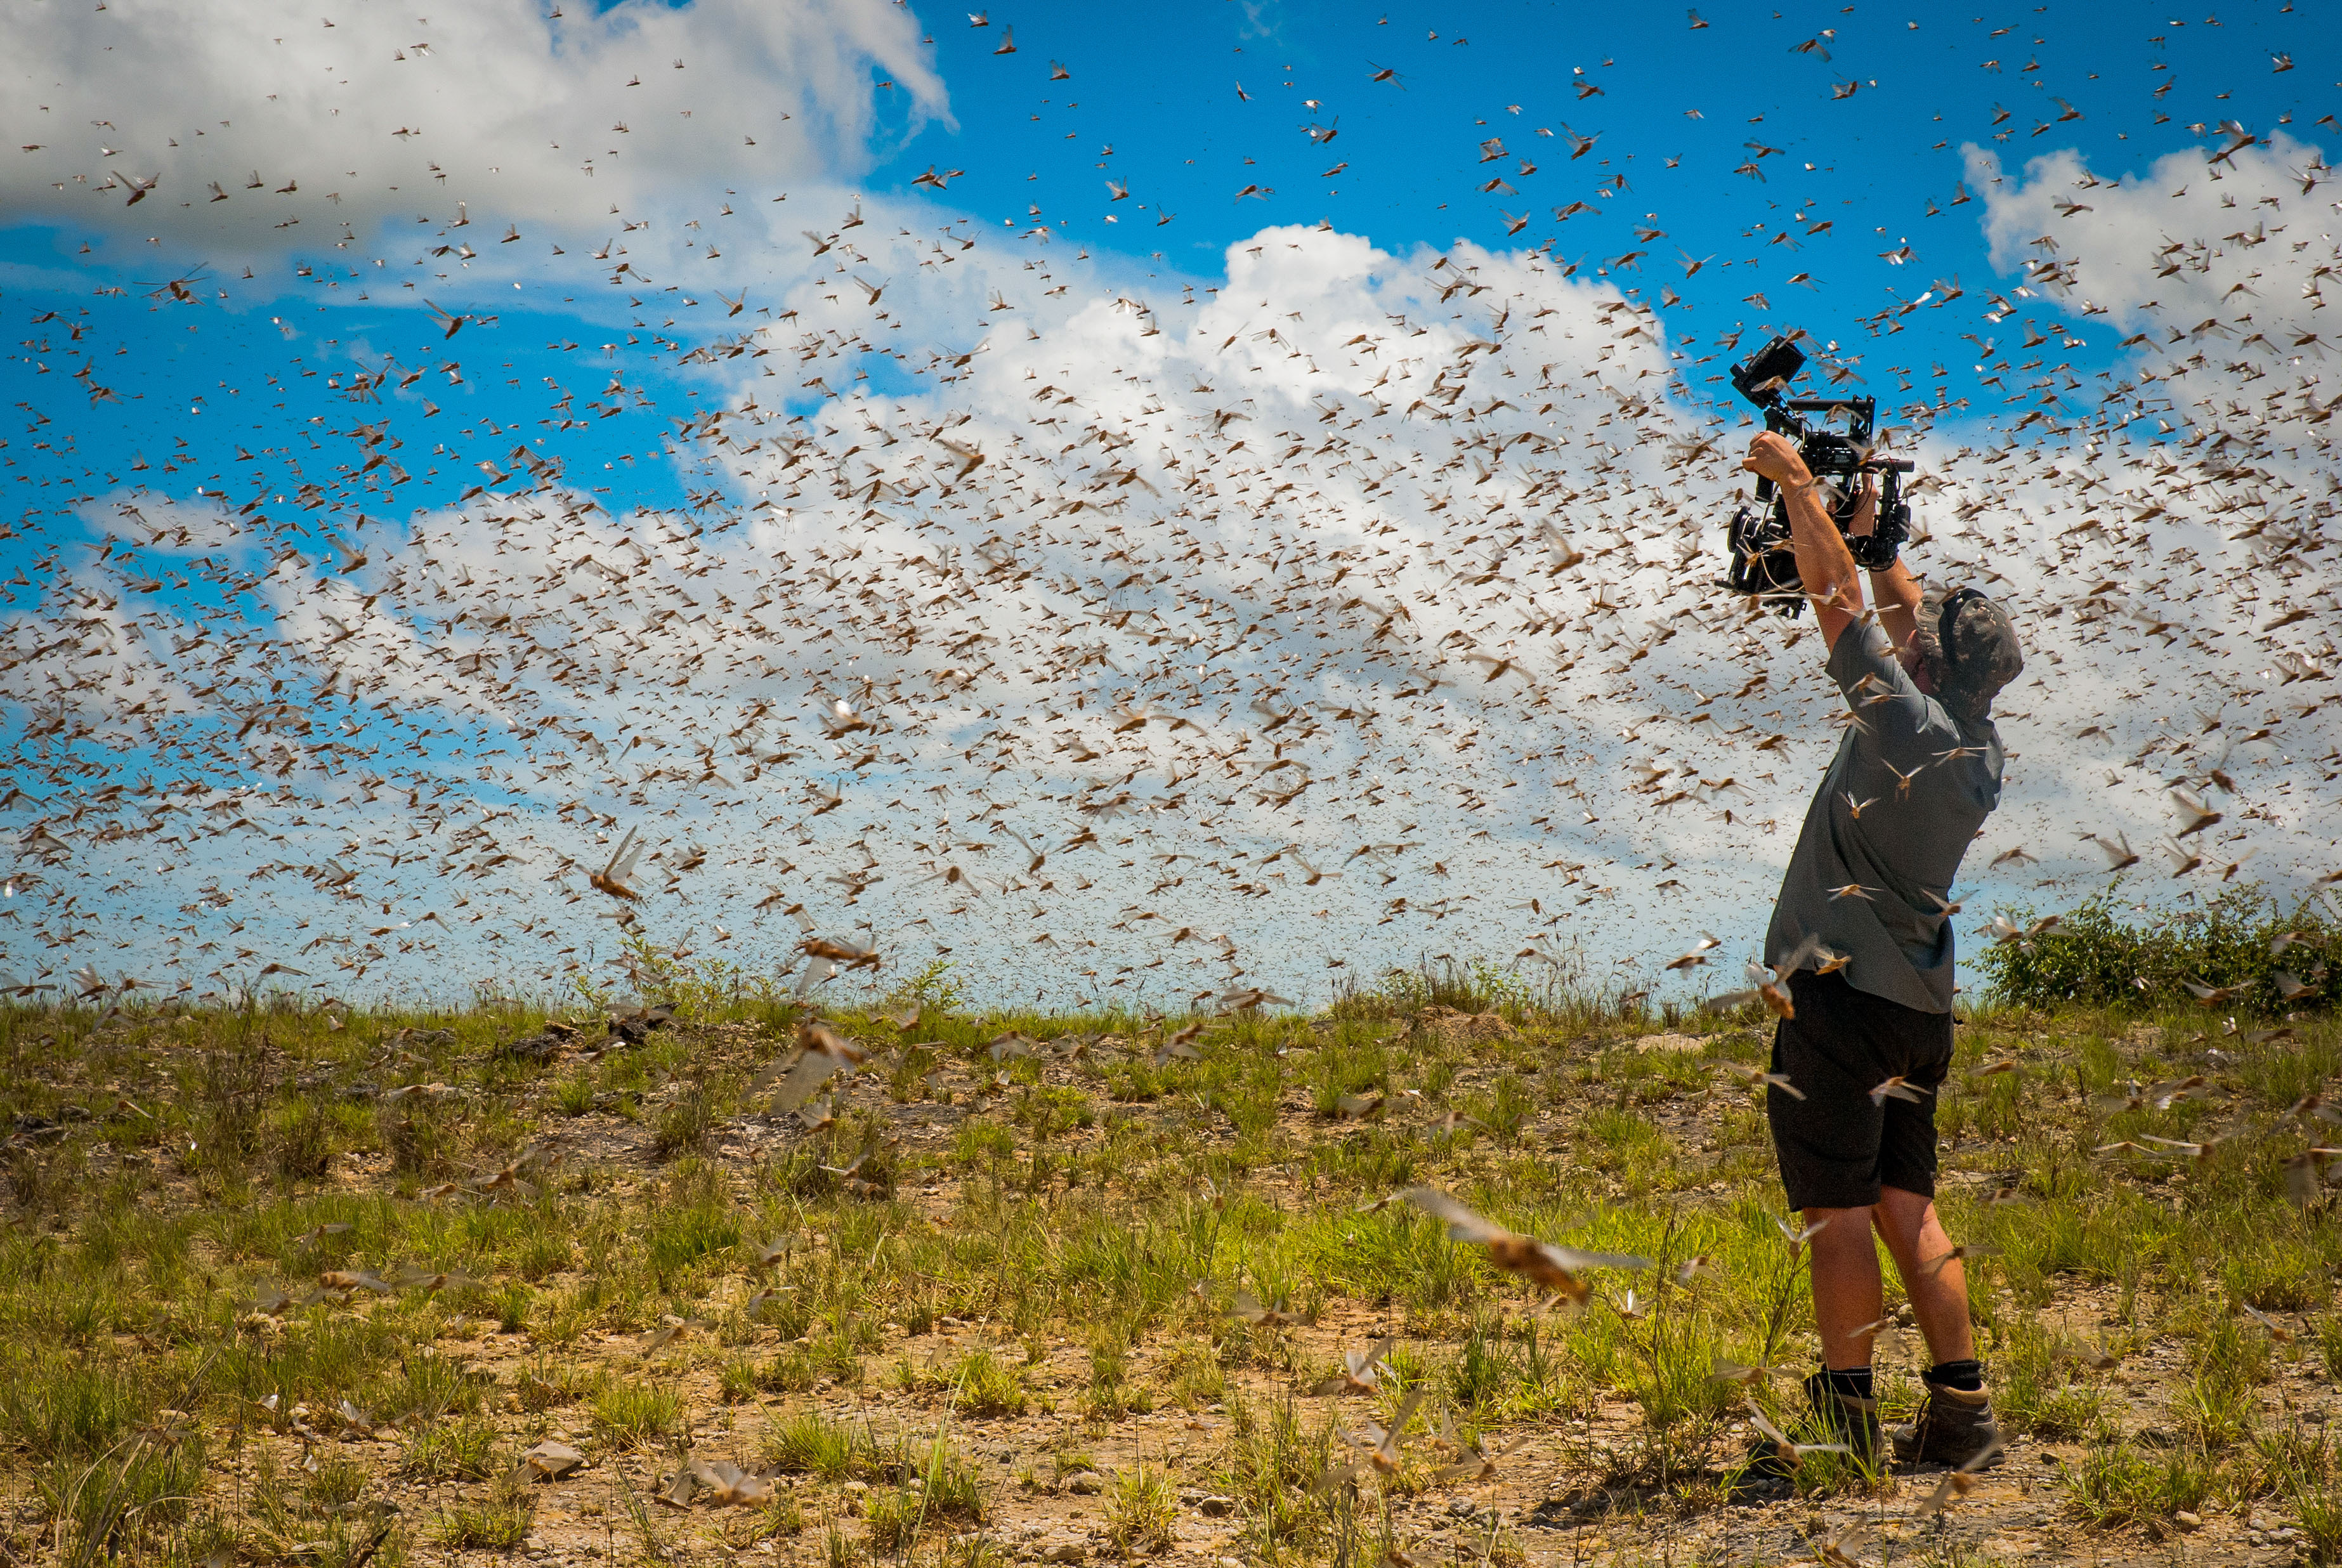 DISH will deliver live in 4K Ultra HD the highly-anticipated natural history series, Planet Earth II. (Photo: Business Wire)